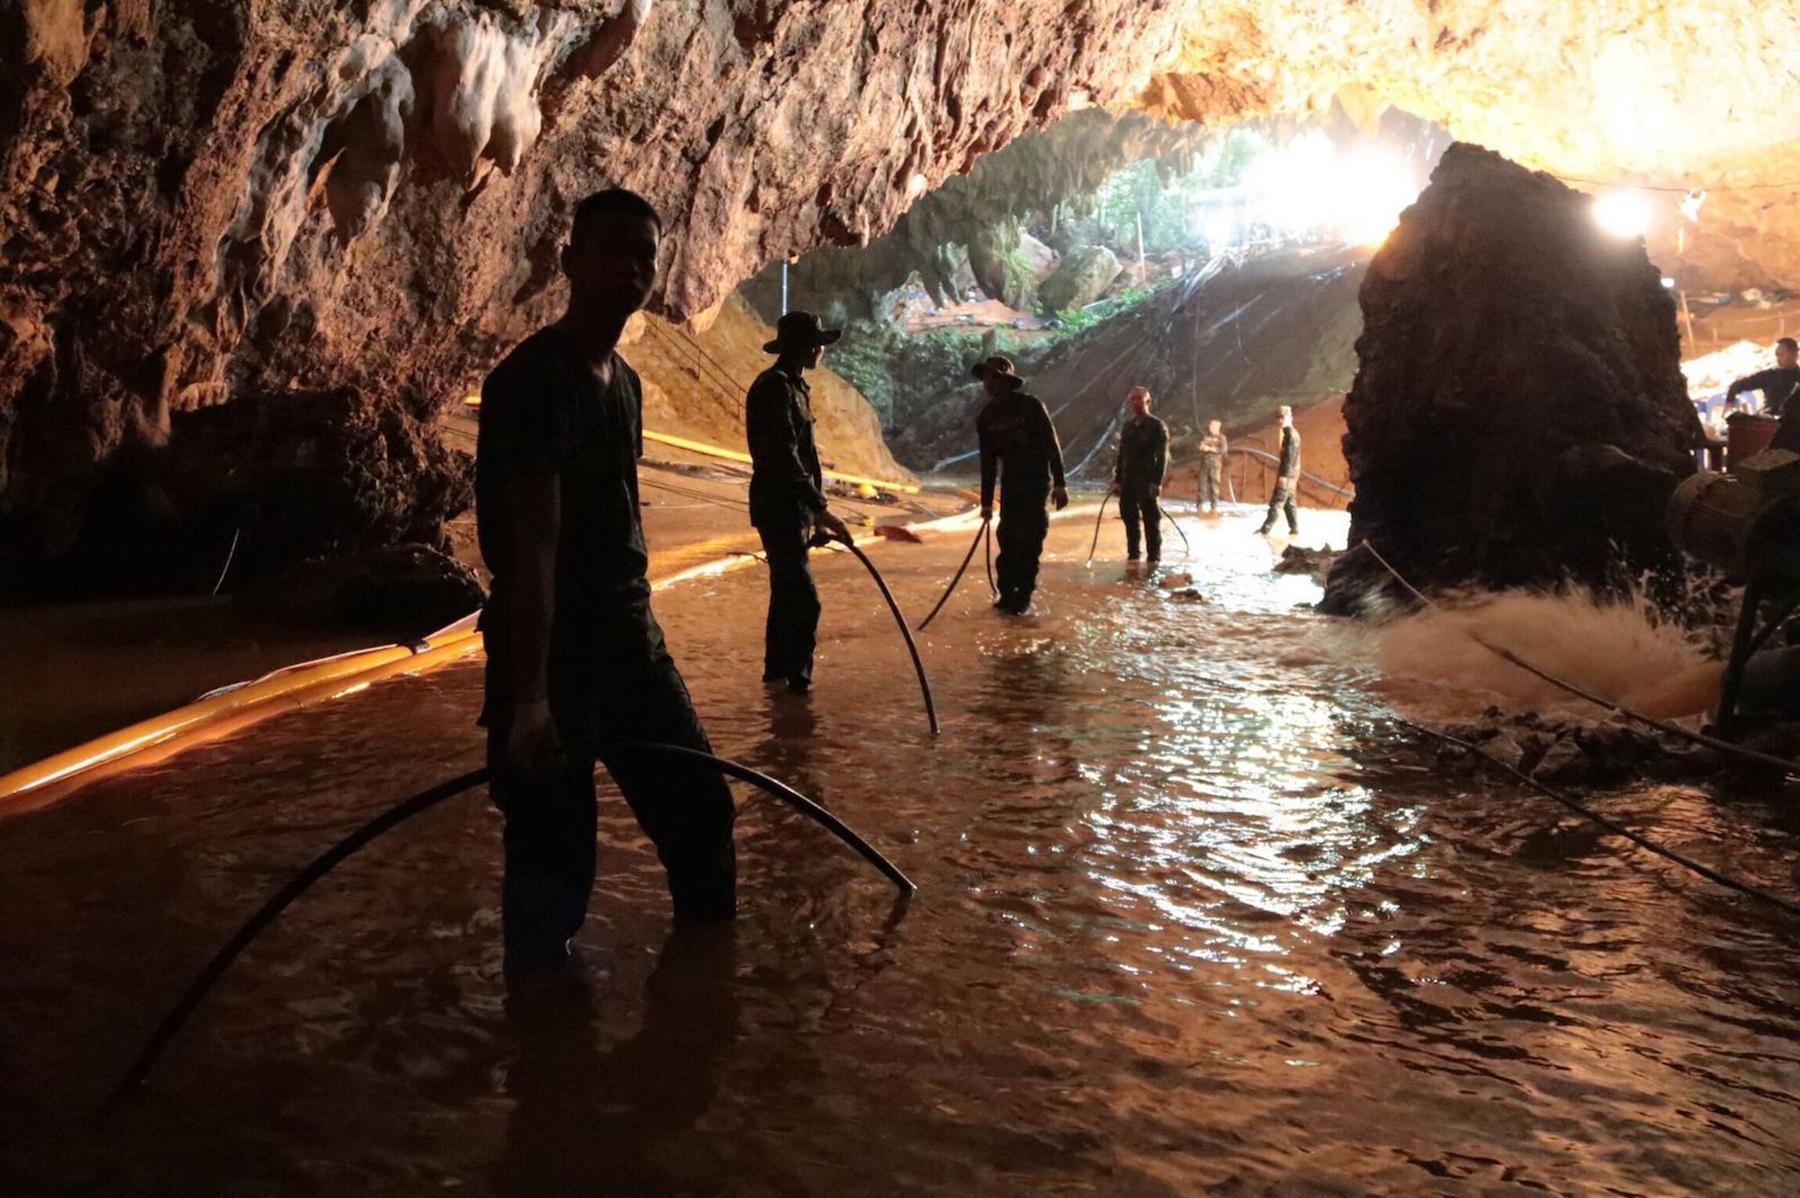 <div class='meta'><div class='origin-logo' data-origin='AP'></div><span class='caption-text' data-credit='Thai Navy via AP'>Thai rescue teams arrange a water pumping system at the entrance to a flooded cave complex where 12 boys and their soccer coach went missing in northern Thailand.</span></div>